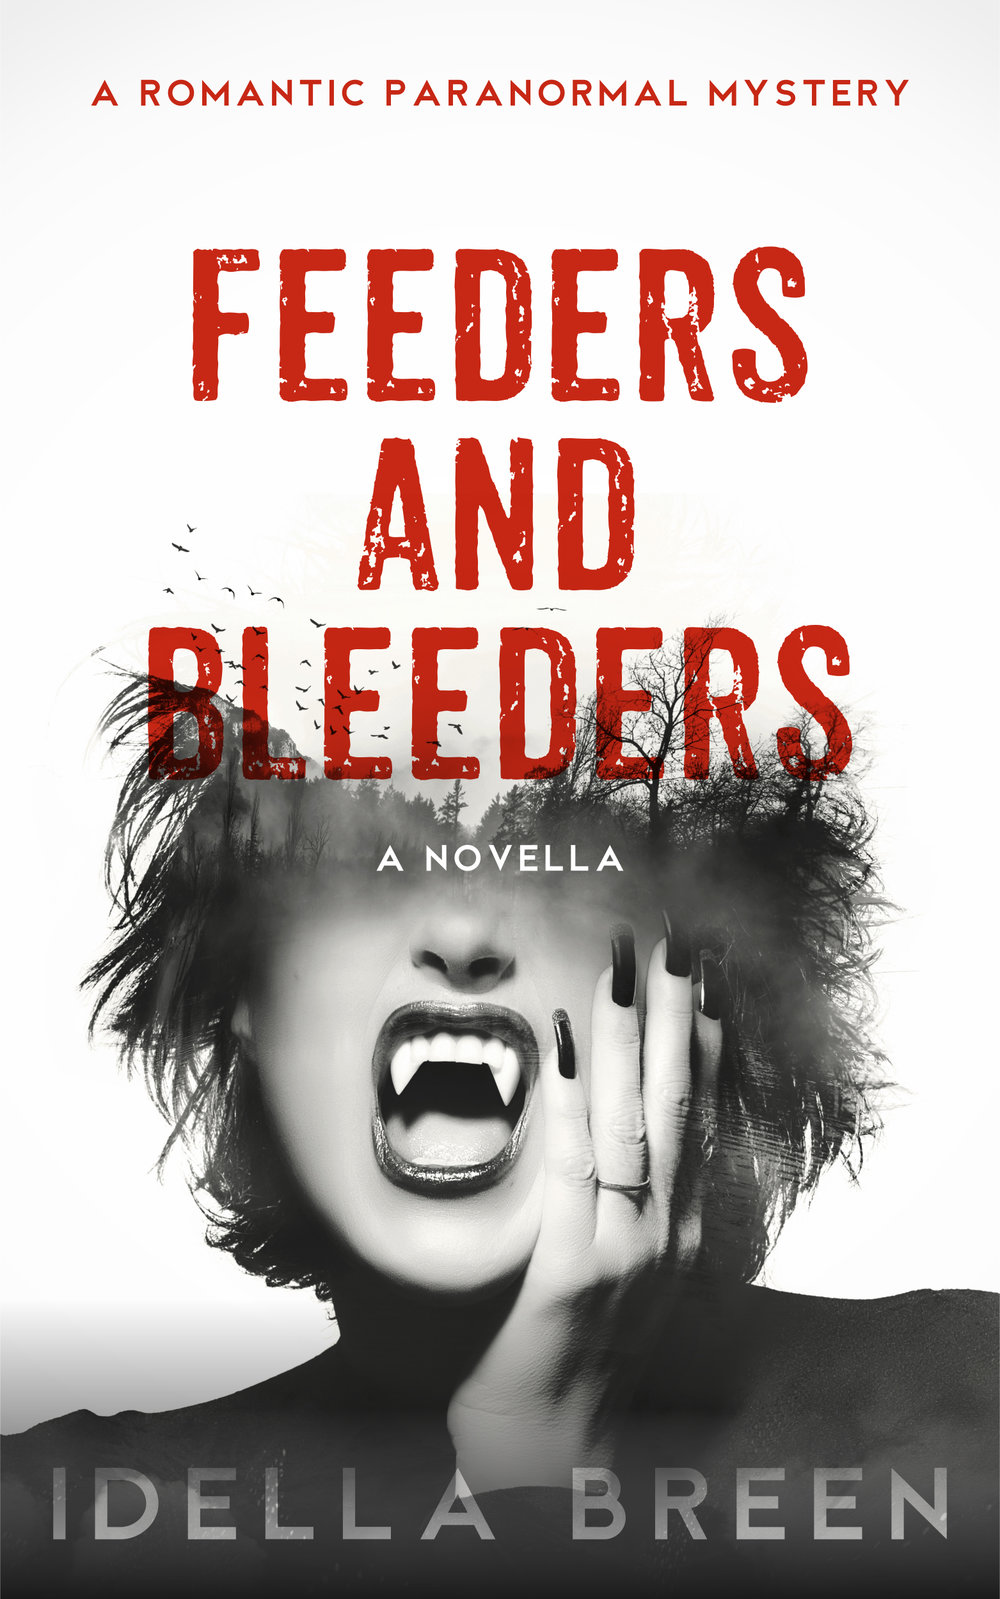 Copy of Feeders And Bleeders - High Resolution.jpg